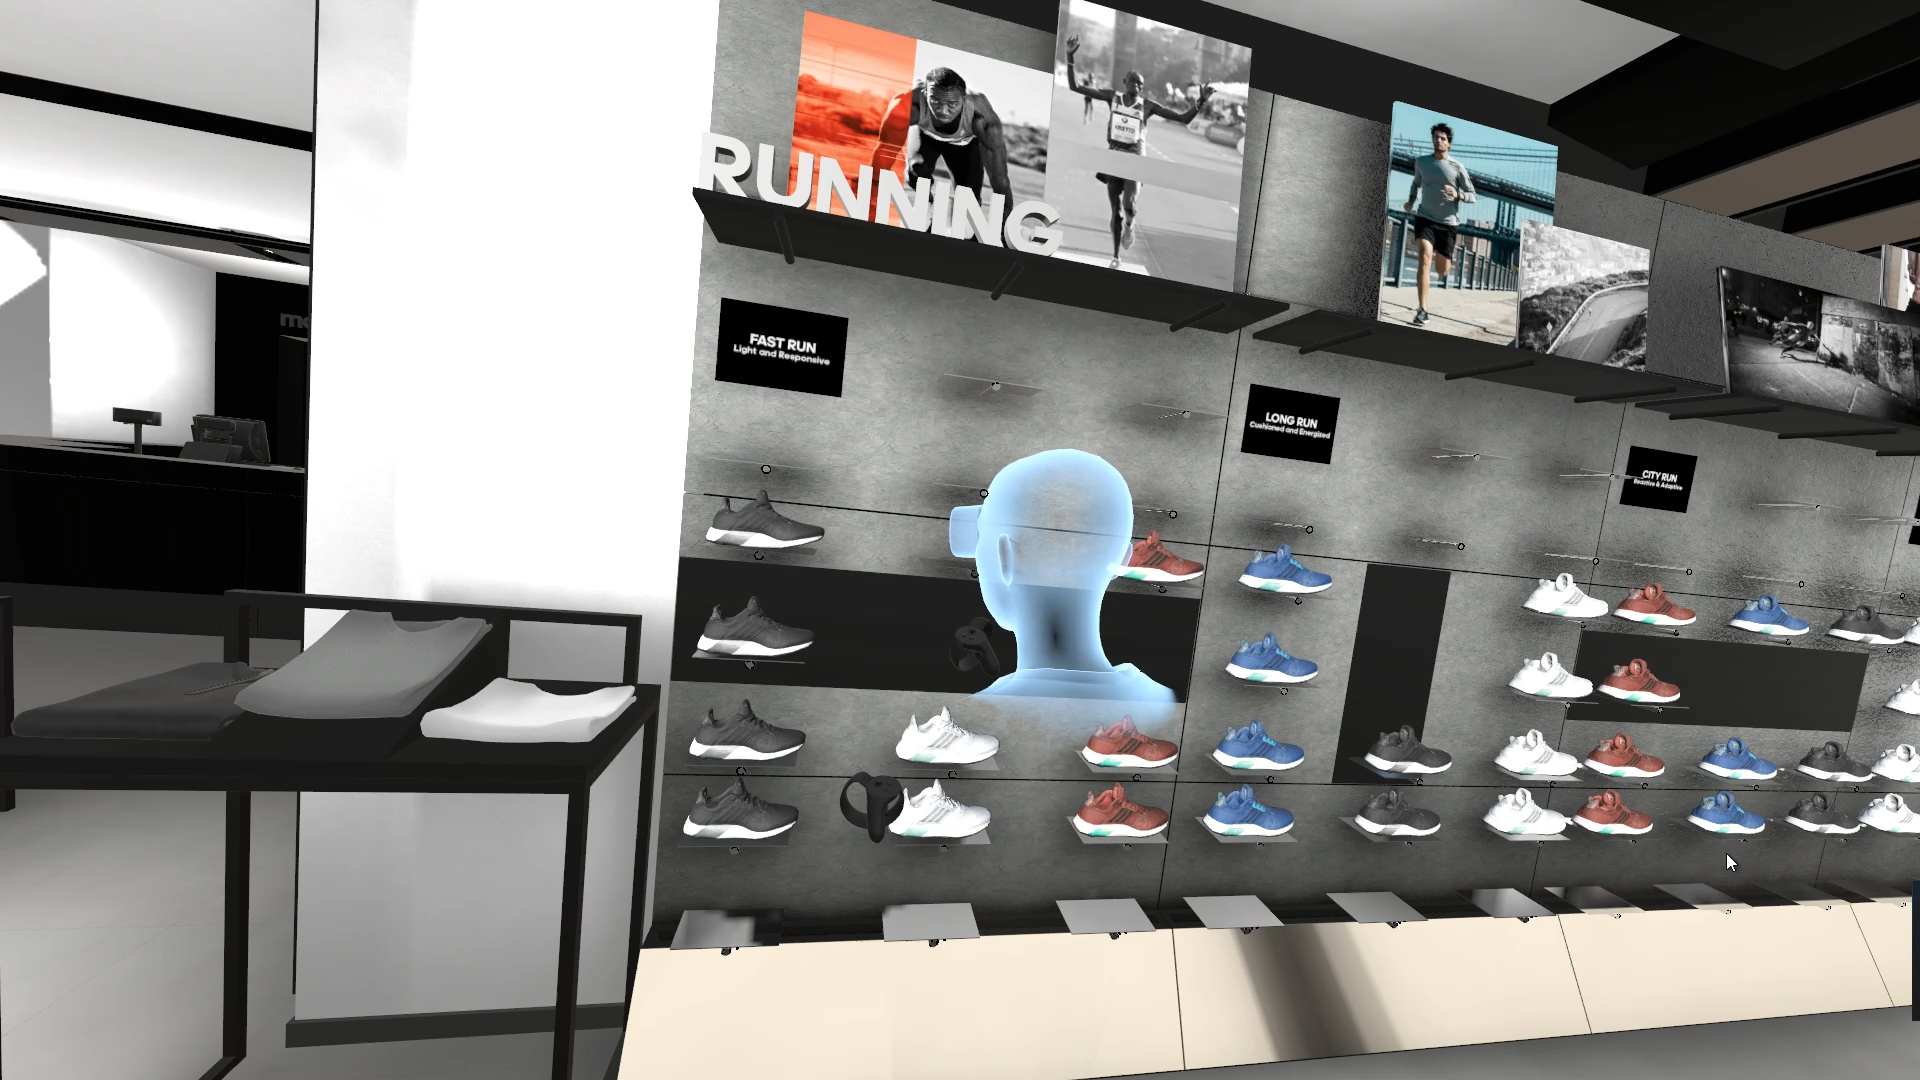 Virtual Shoe Wall